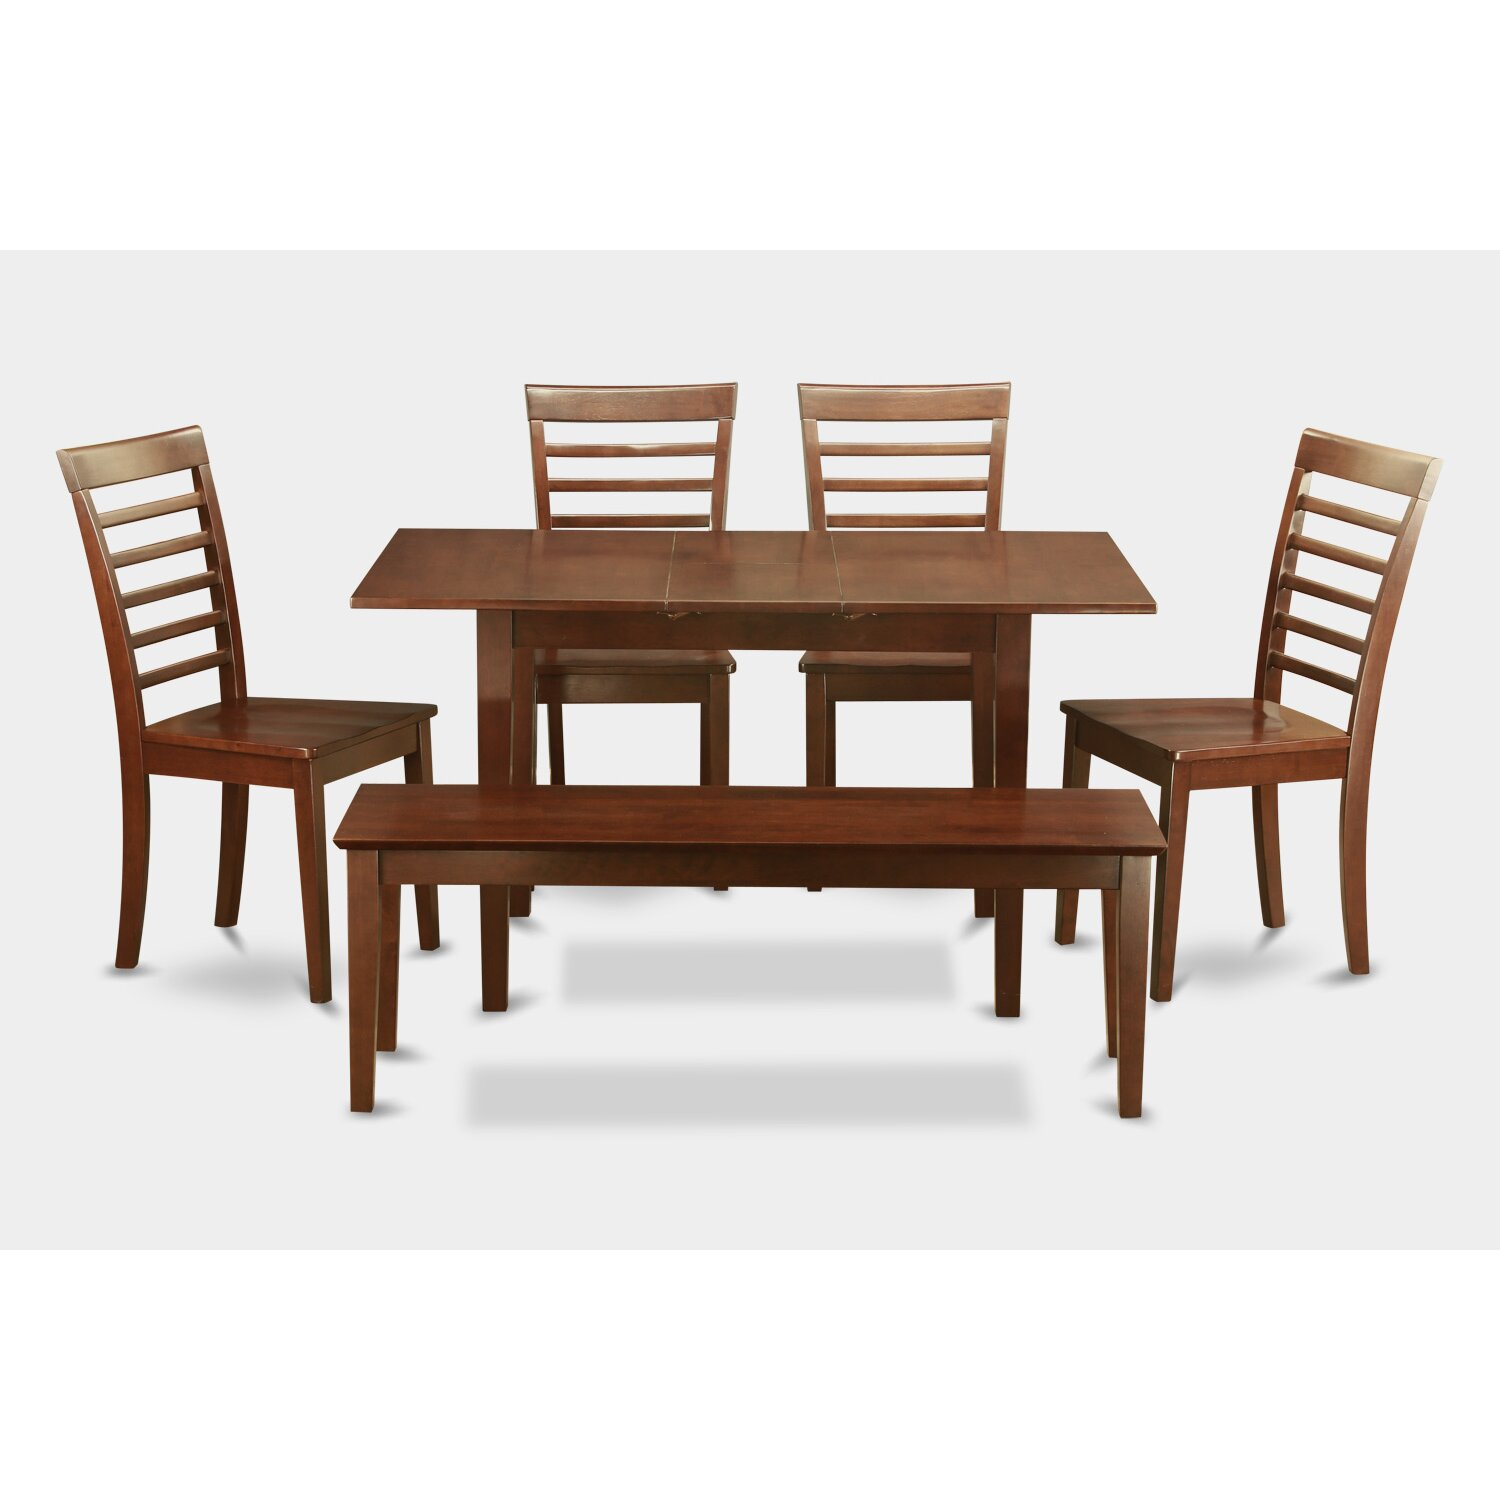 East west norfolk 6 piece dining set reviews wayfair for 6 piece dining room set